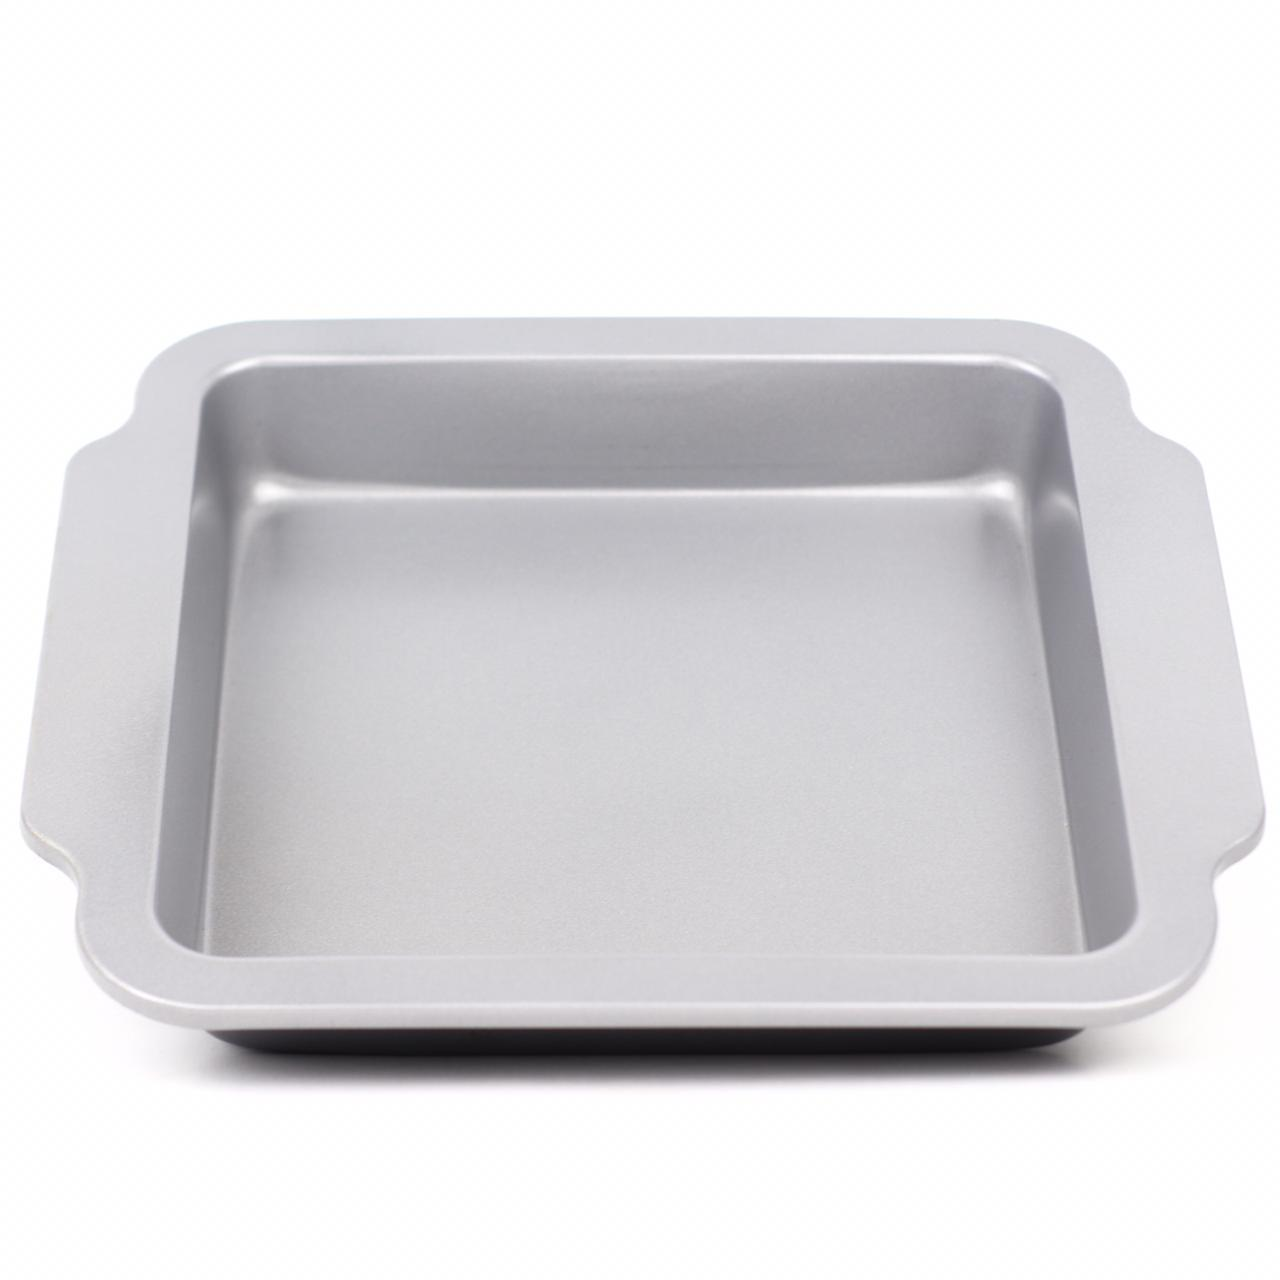 Square shaped easy to hold Bake ware - waseeh.com